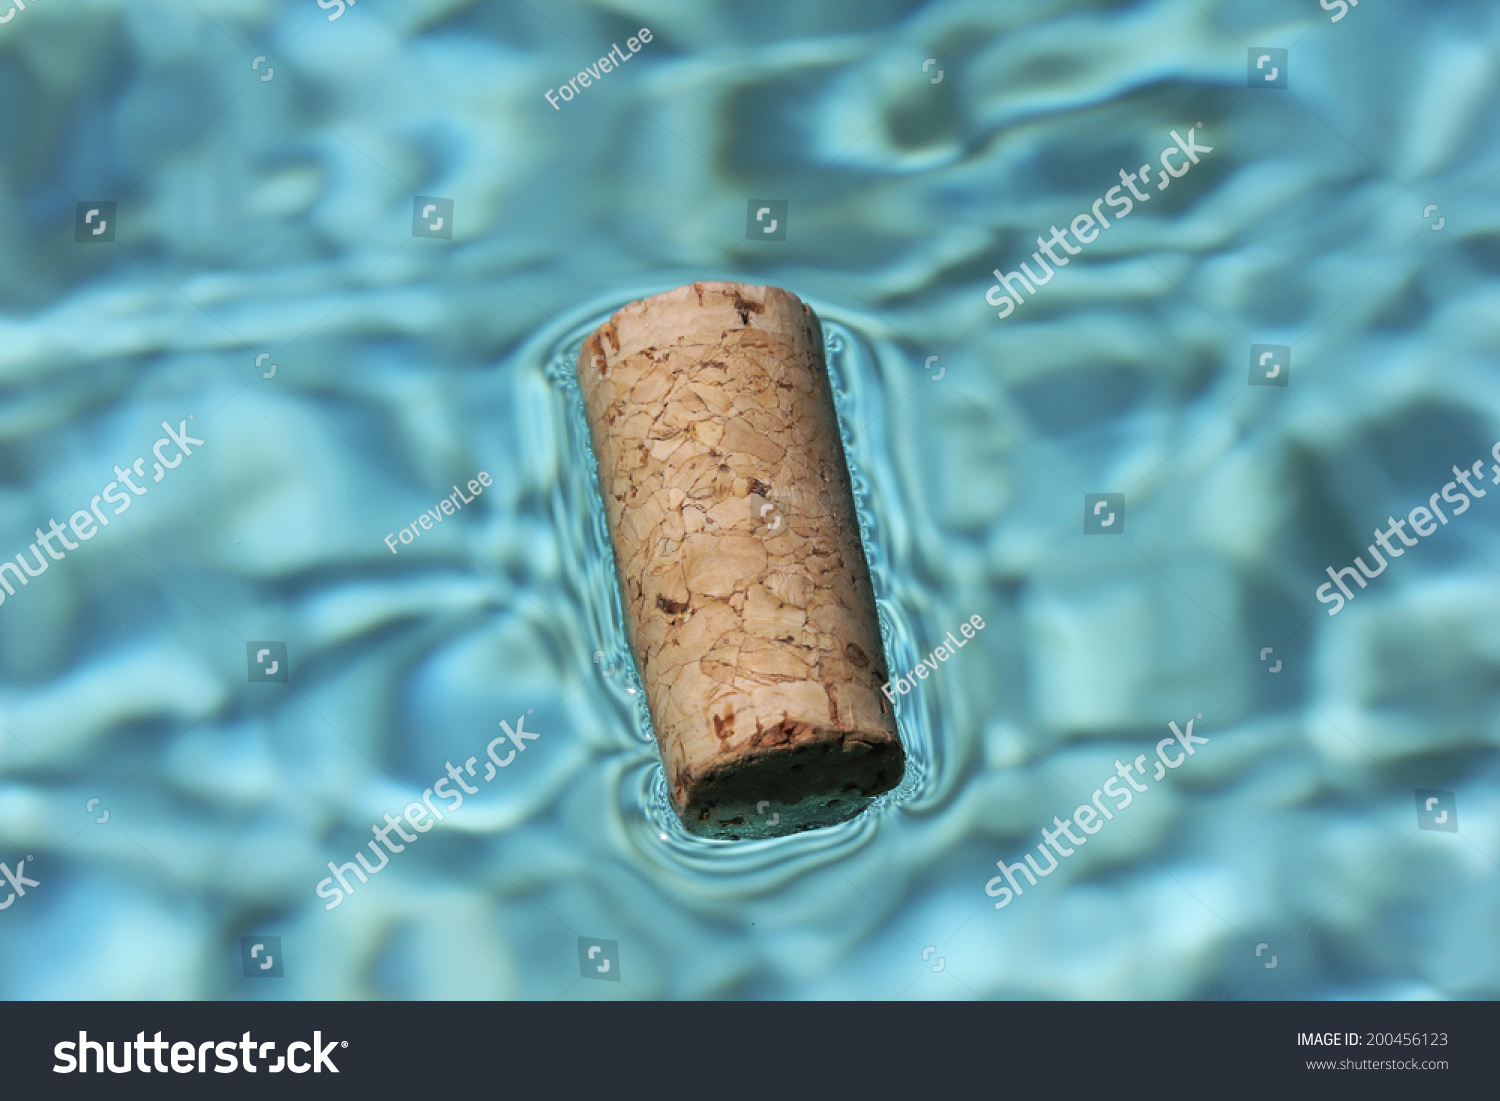 Cork Floating Blue Water Stock Photo 200456123 - Shutterstock